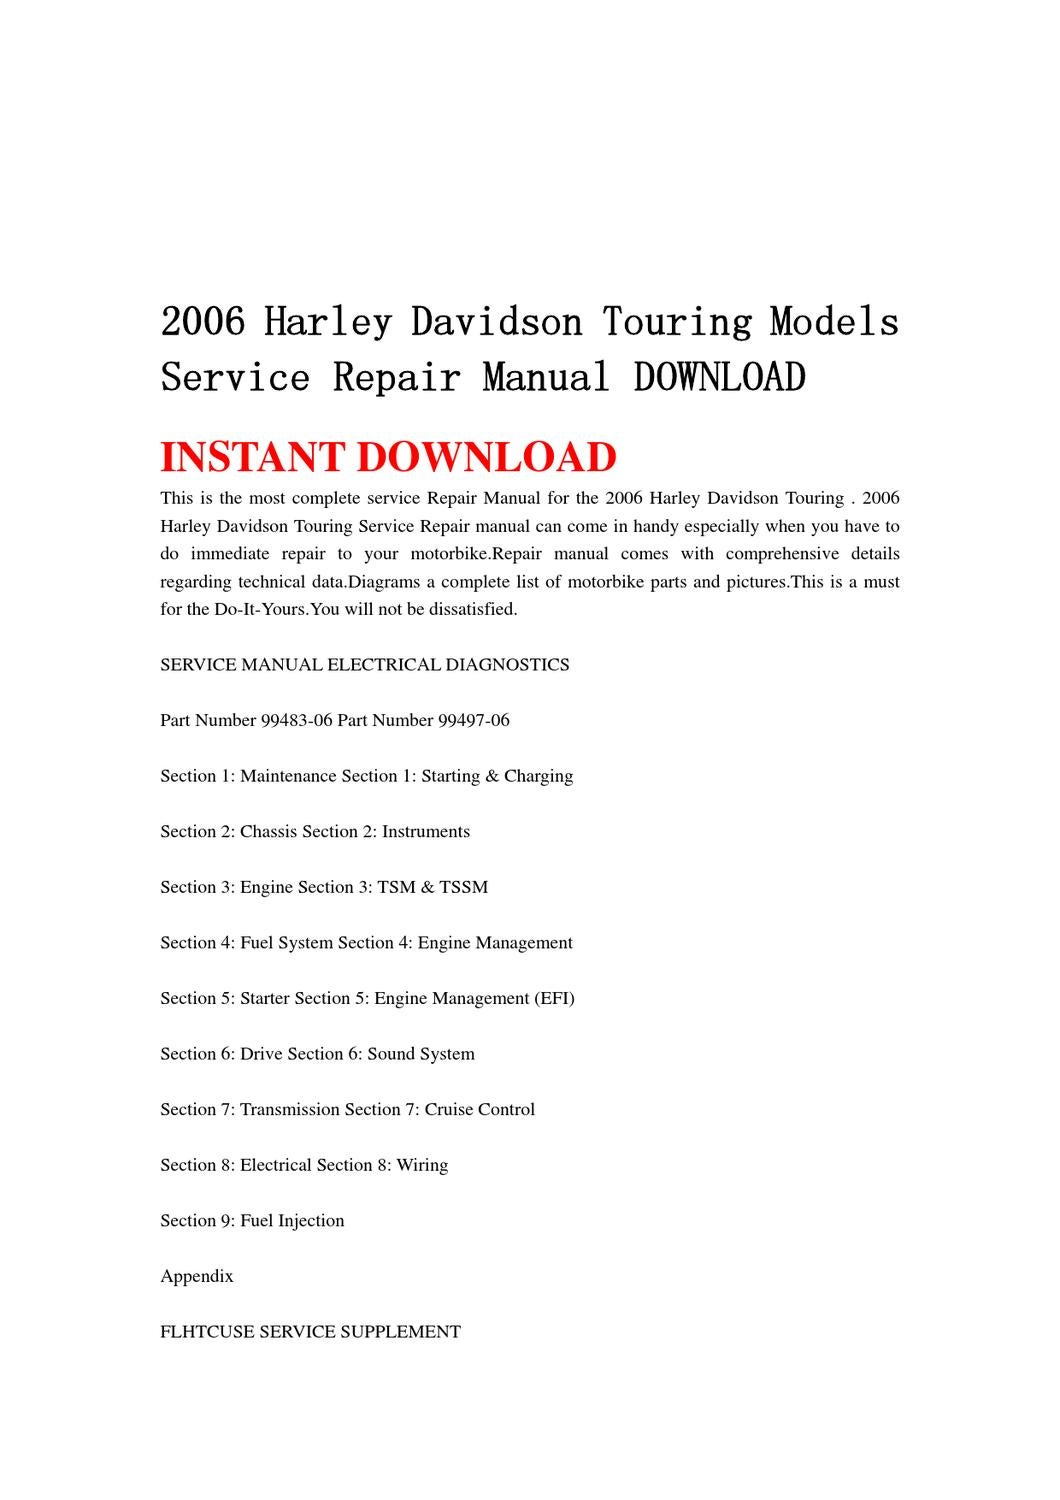 2006 Harley Davidson Touring Models Service Repair Manual